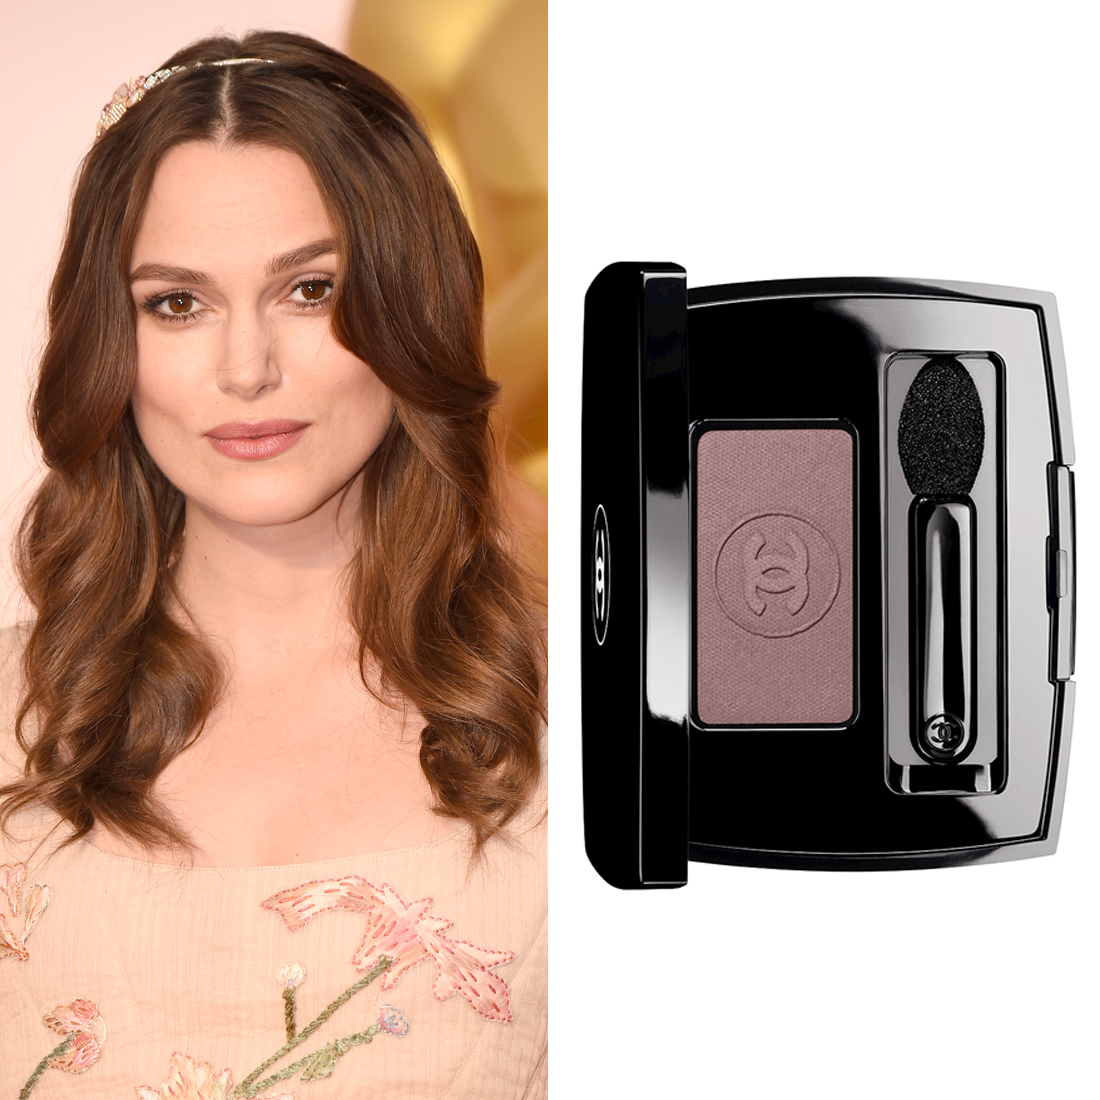 Keira Knightley at the Oscars     Makeup artist Kate Lee accentuated Keira's natural pregnancy glow with a mauve eye contour. She used  Chanel Soft Touch Eye Shadow in Hasard  ($44) to give her eye colour extra depth on the Oscars red carpet.  Image Source:  Getty    Read More     Oscars Beauty  Celebrity Beauty  Award Season  Beauty Shopping  Oscars  Golden Globe Awards  Chanel  Keira Knightley  Red Carpet